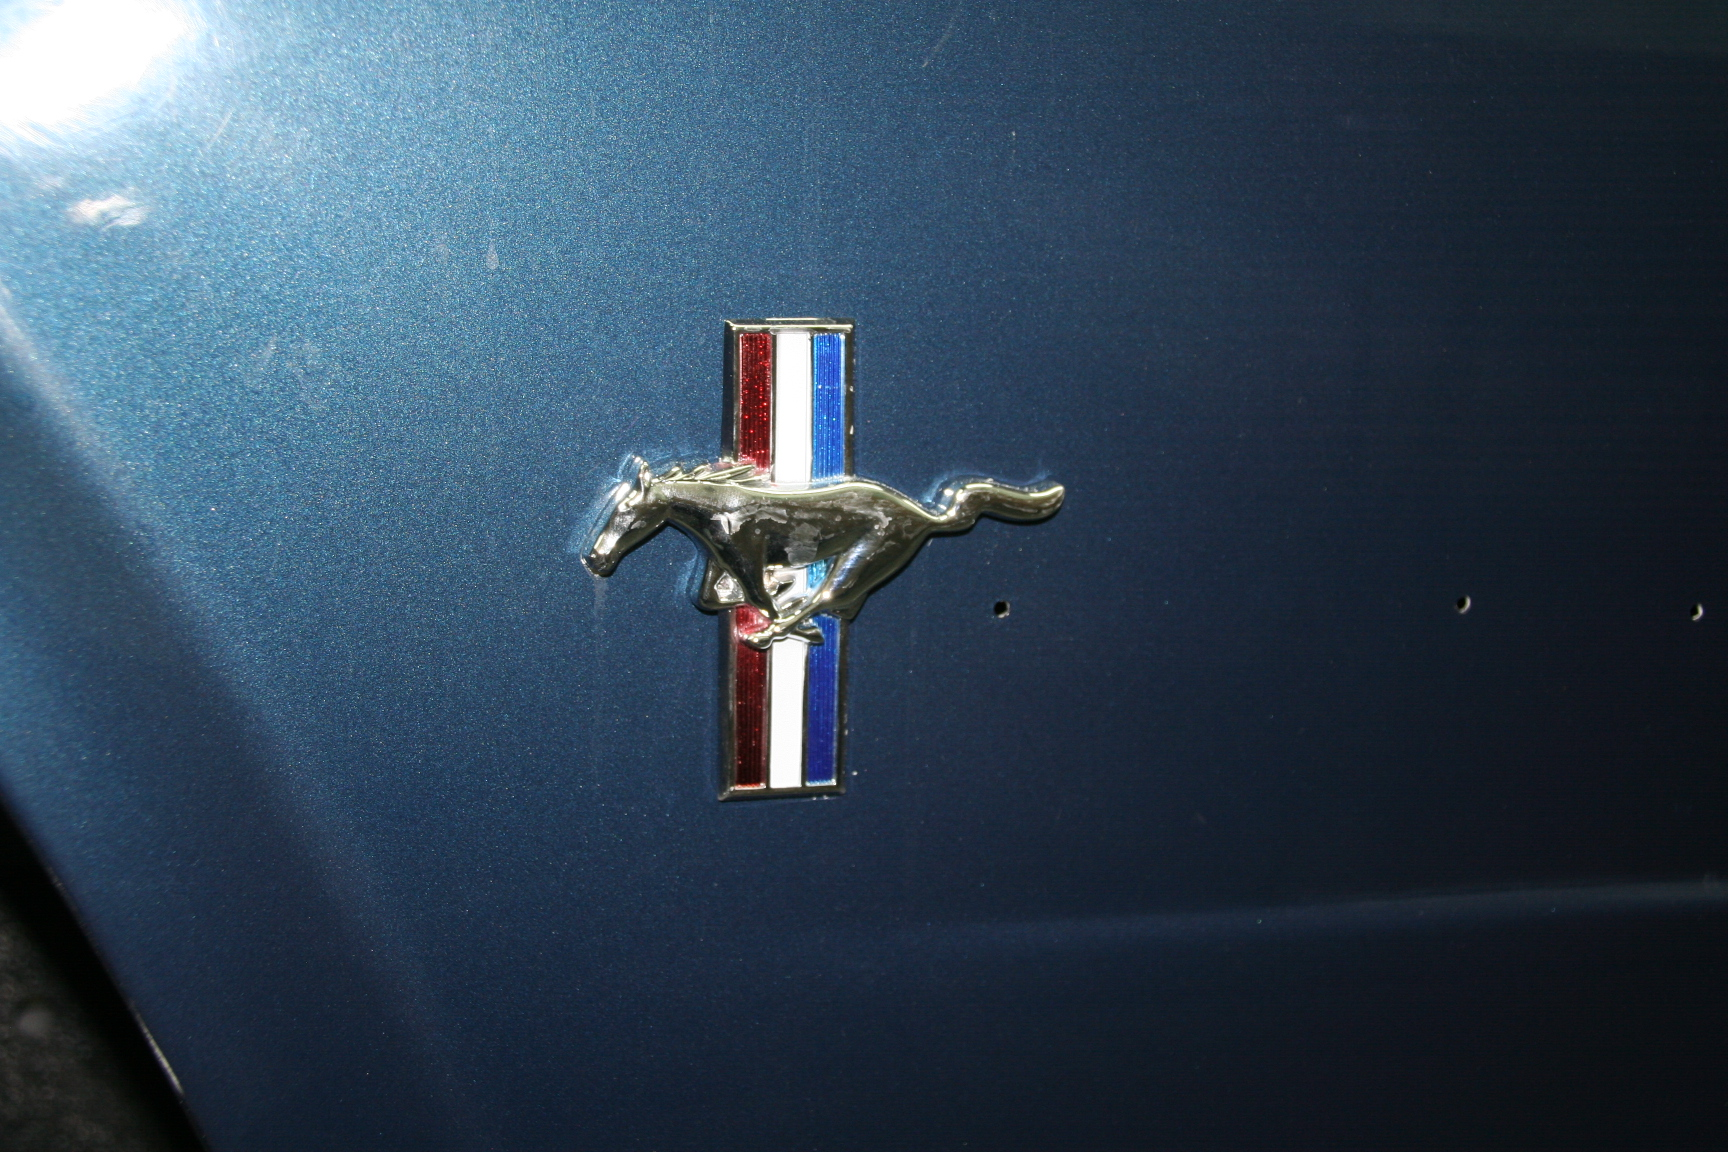 mustang le 13 avril 2015 002